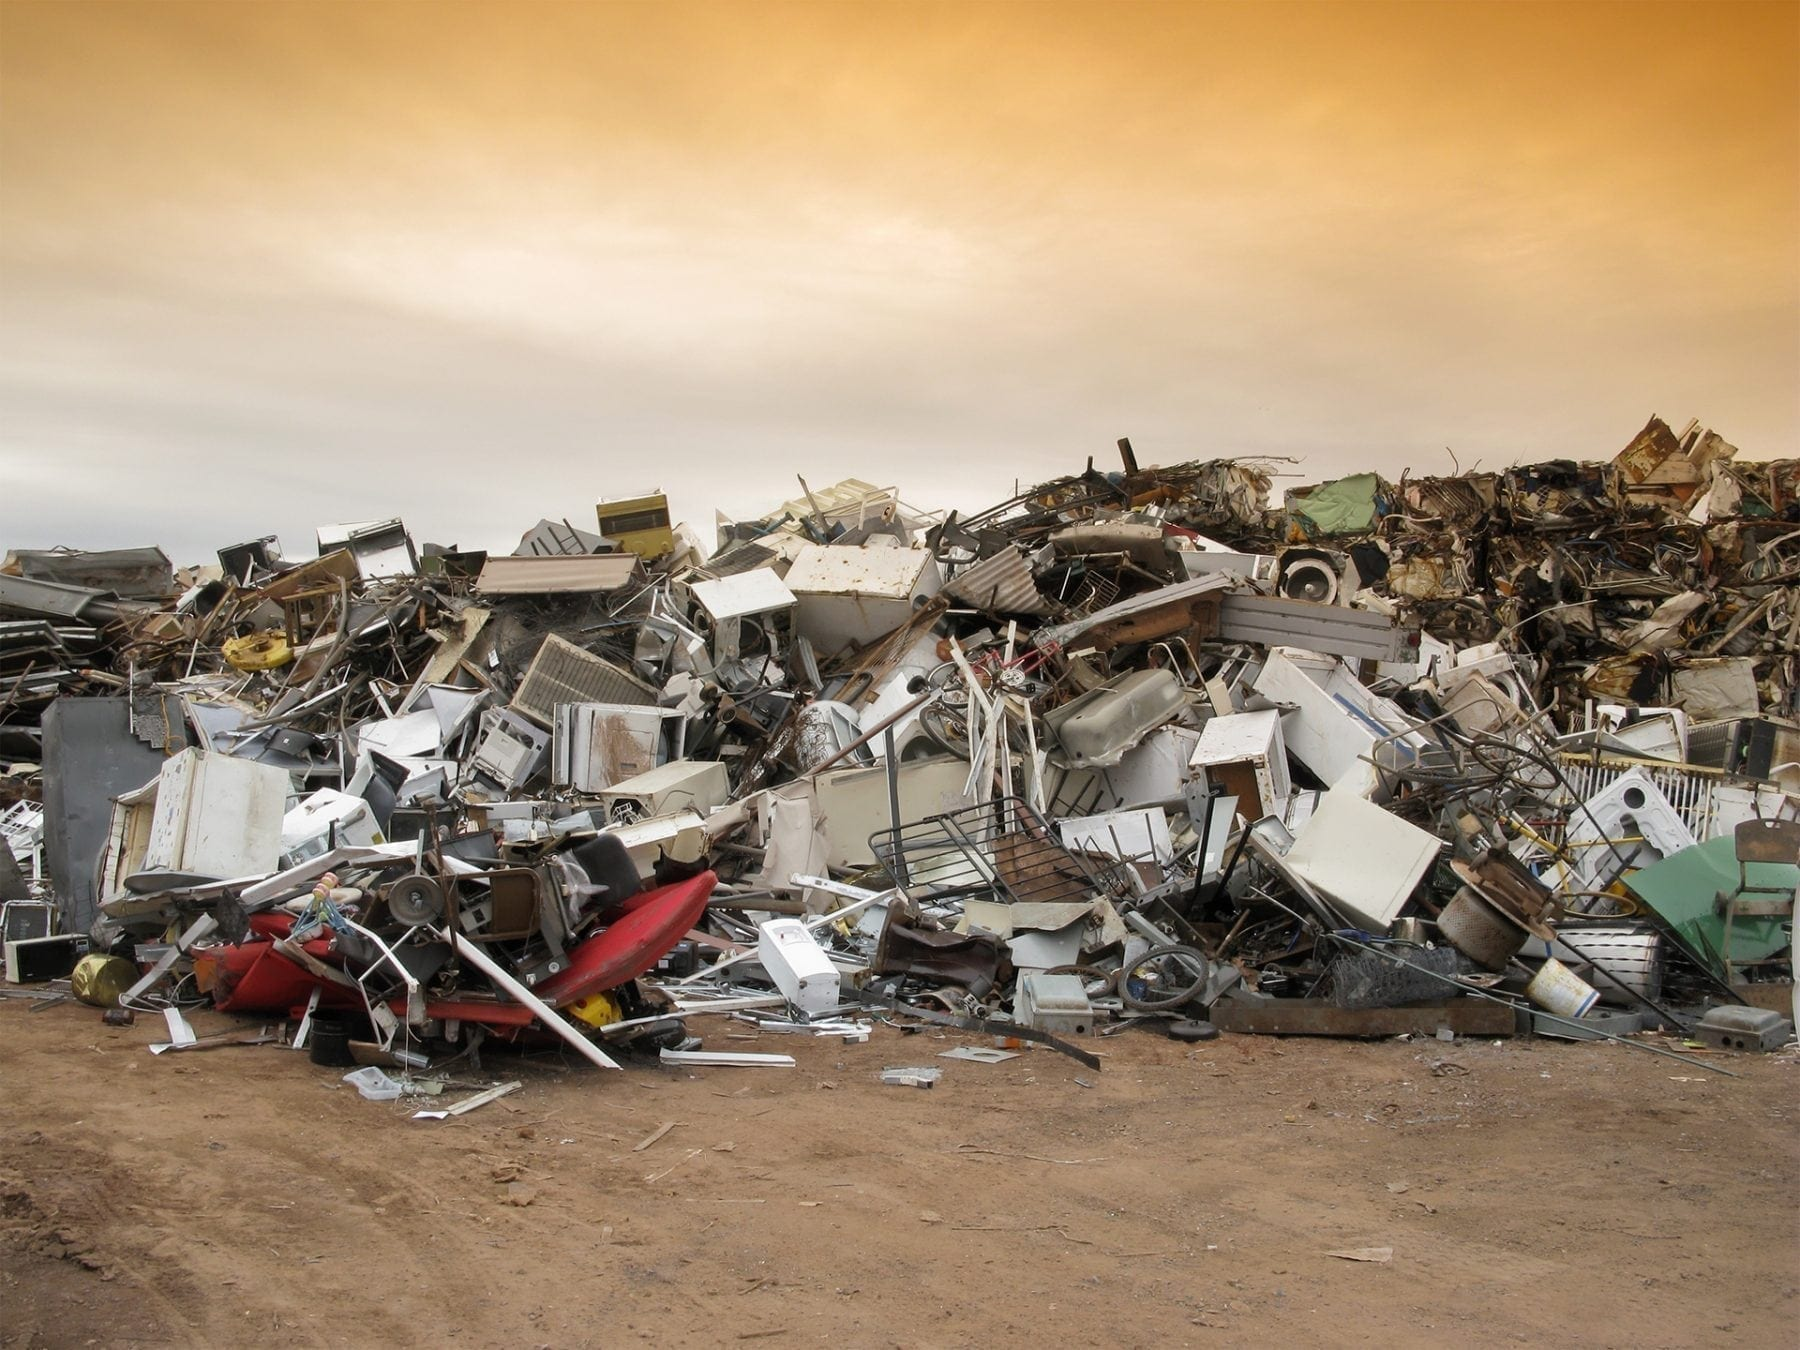 Why Recycle Scrap Metal?